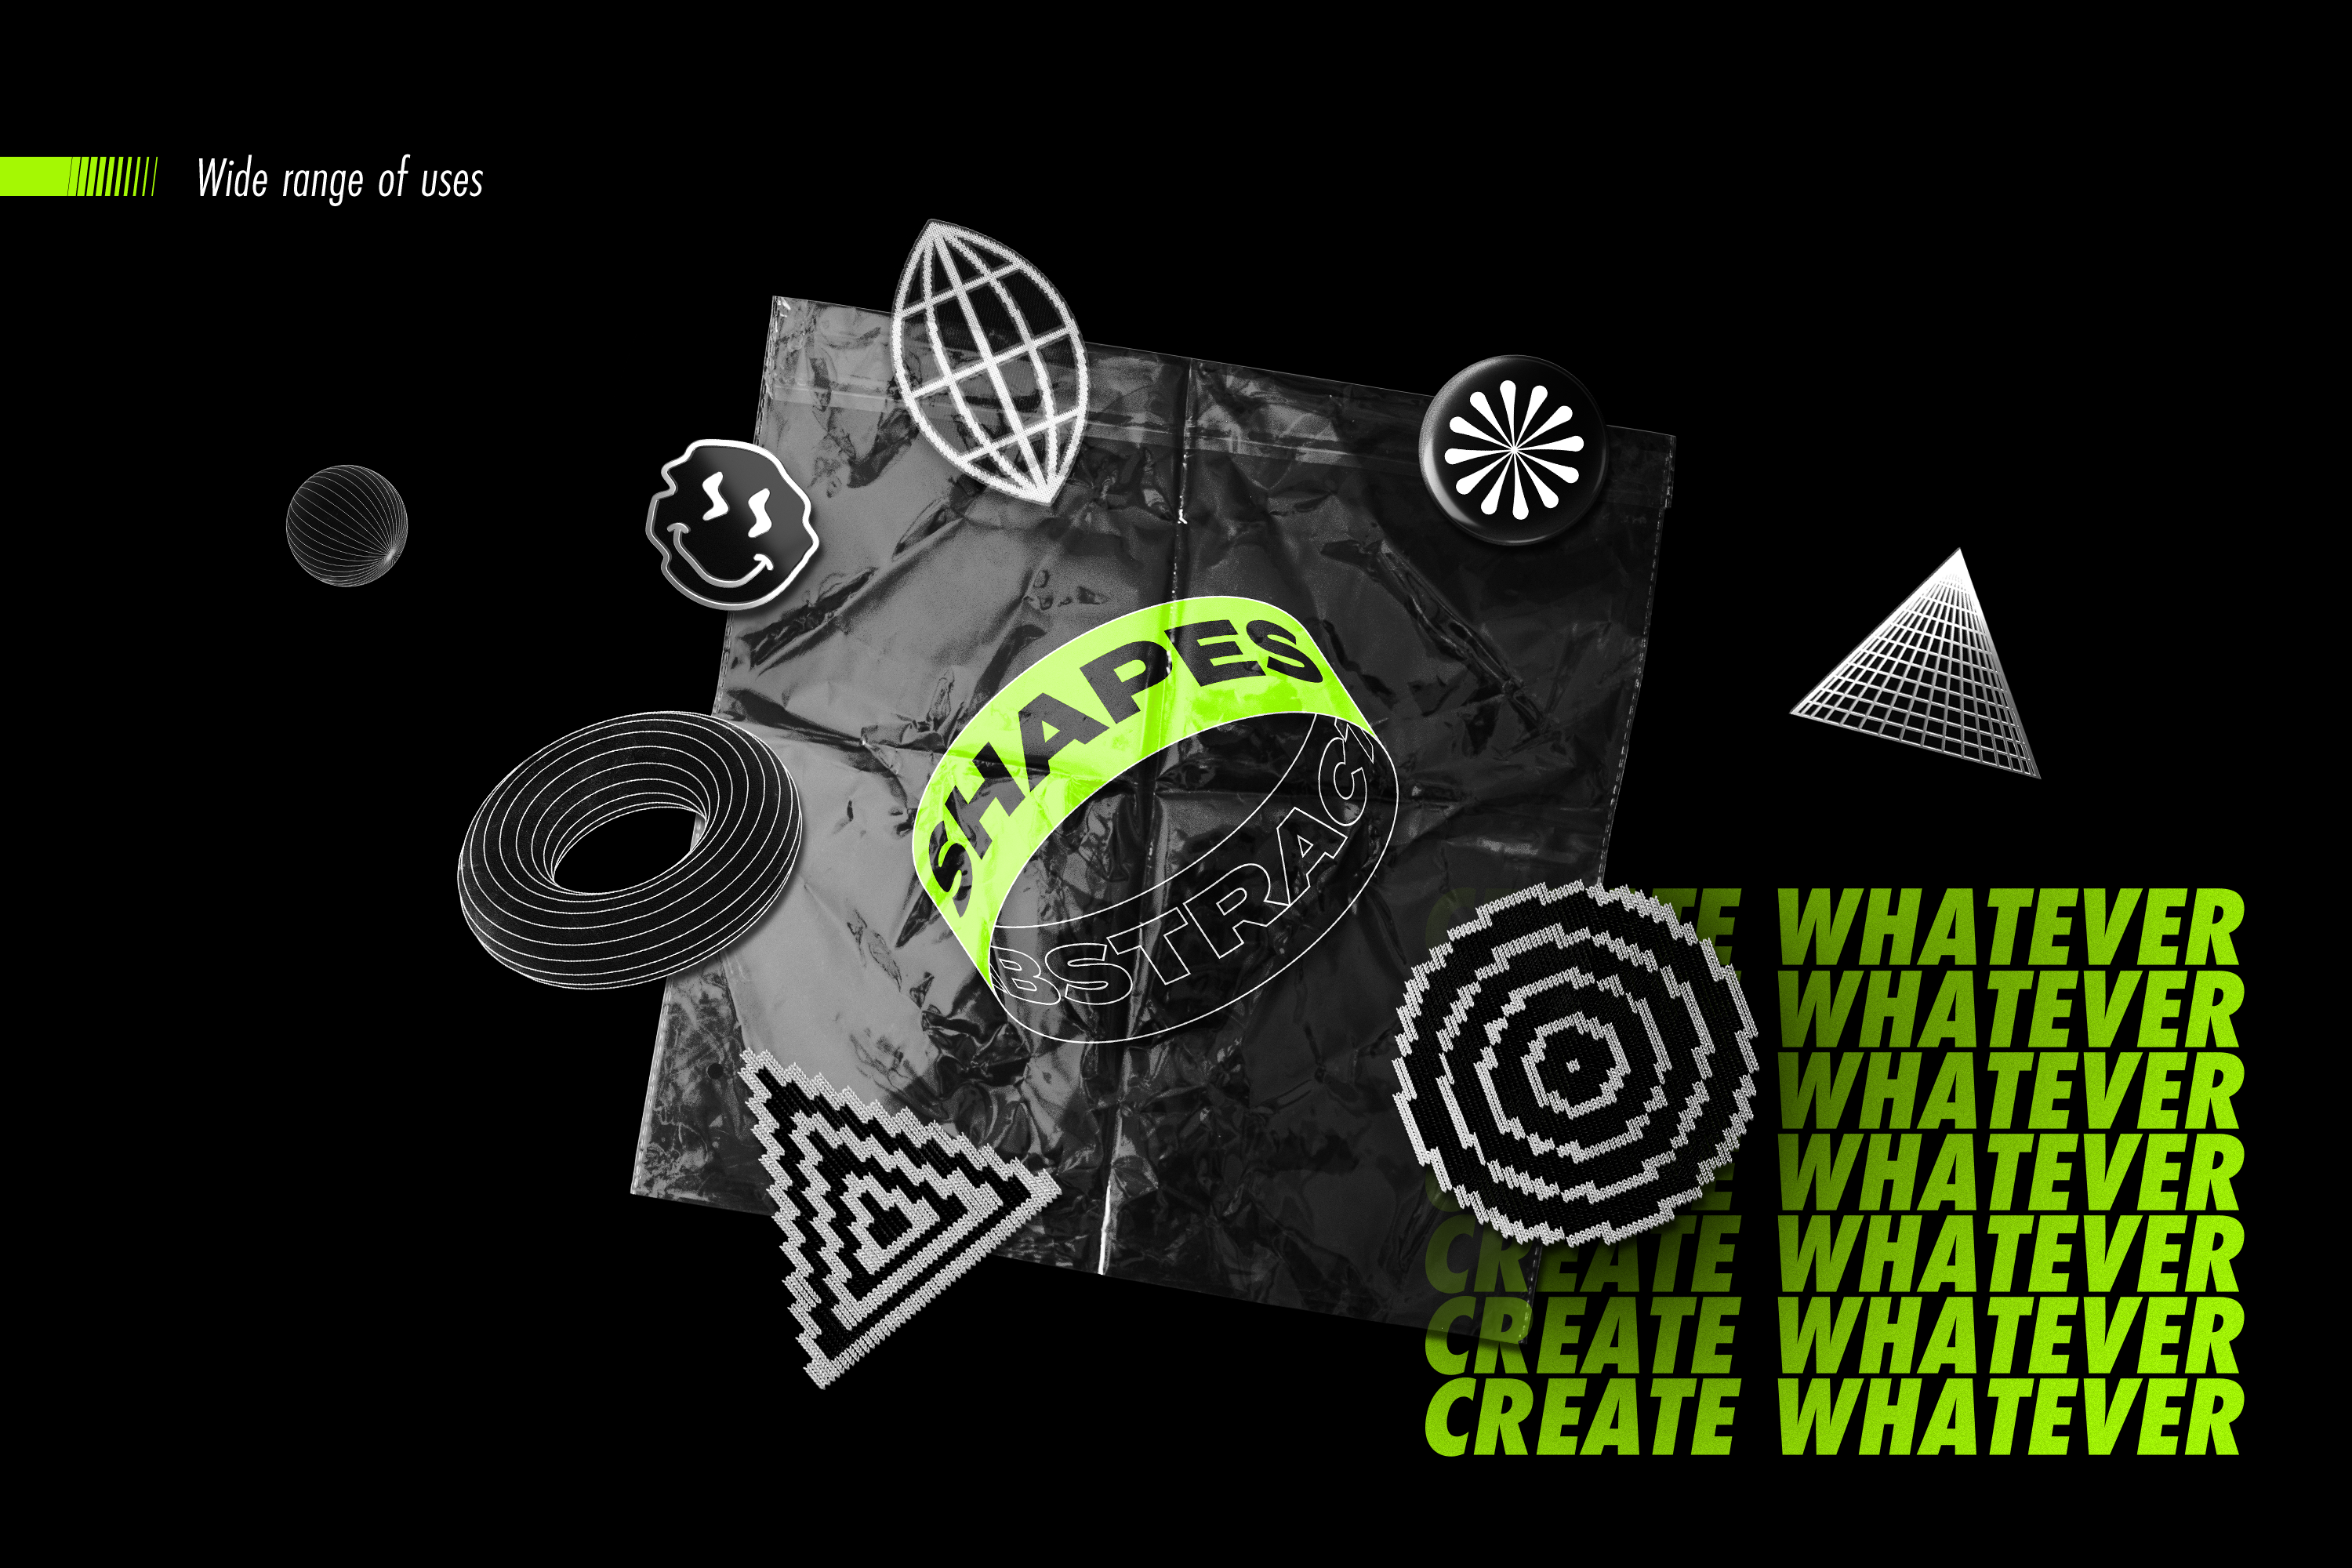 Abstract Shapes collection - 100 design elements example image 3